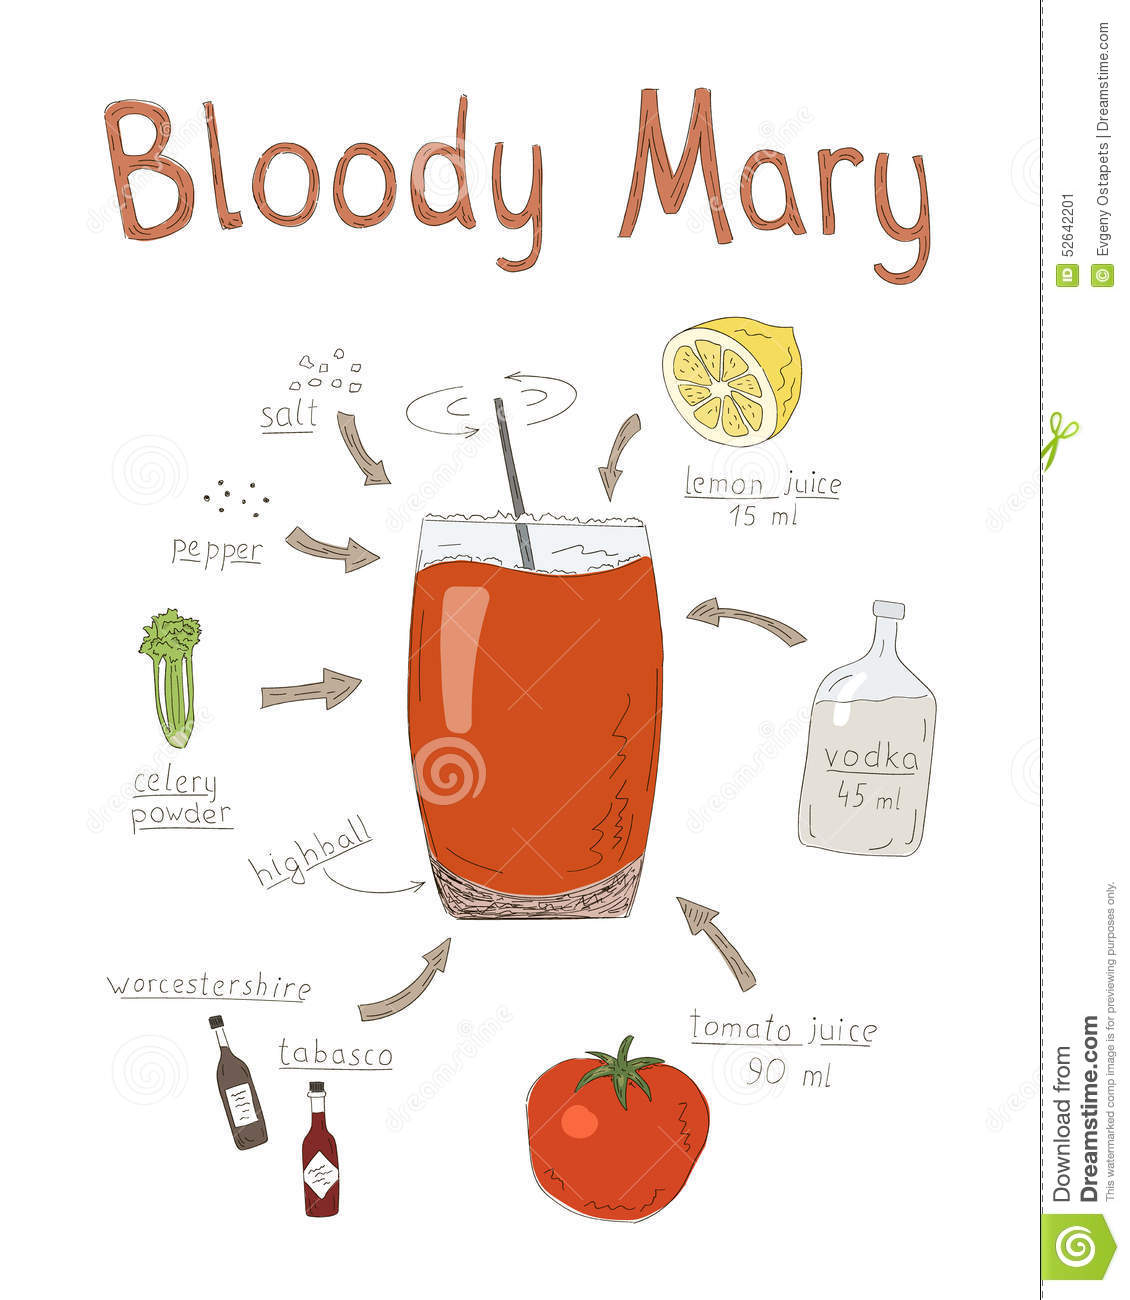 bloody mary drink clipart - photo #21